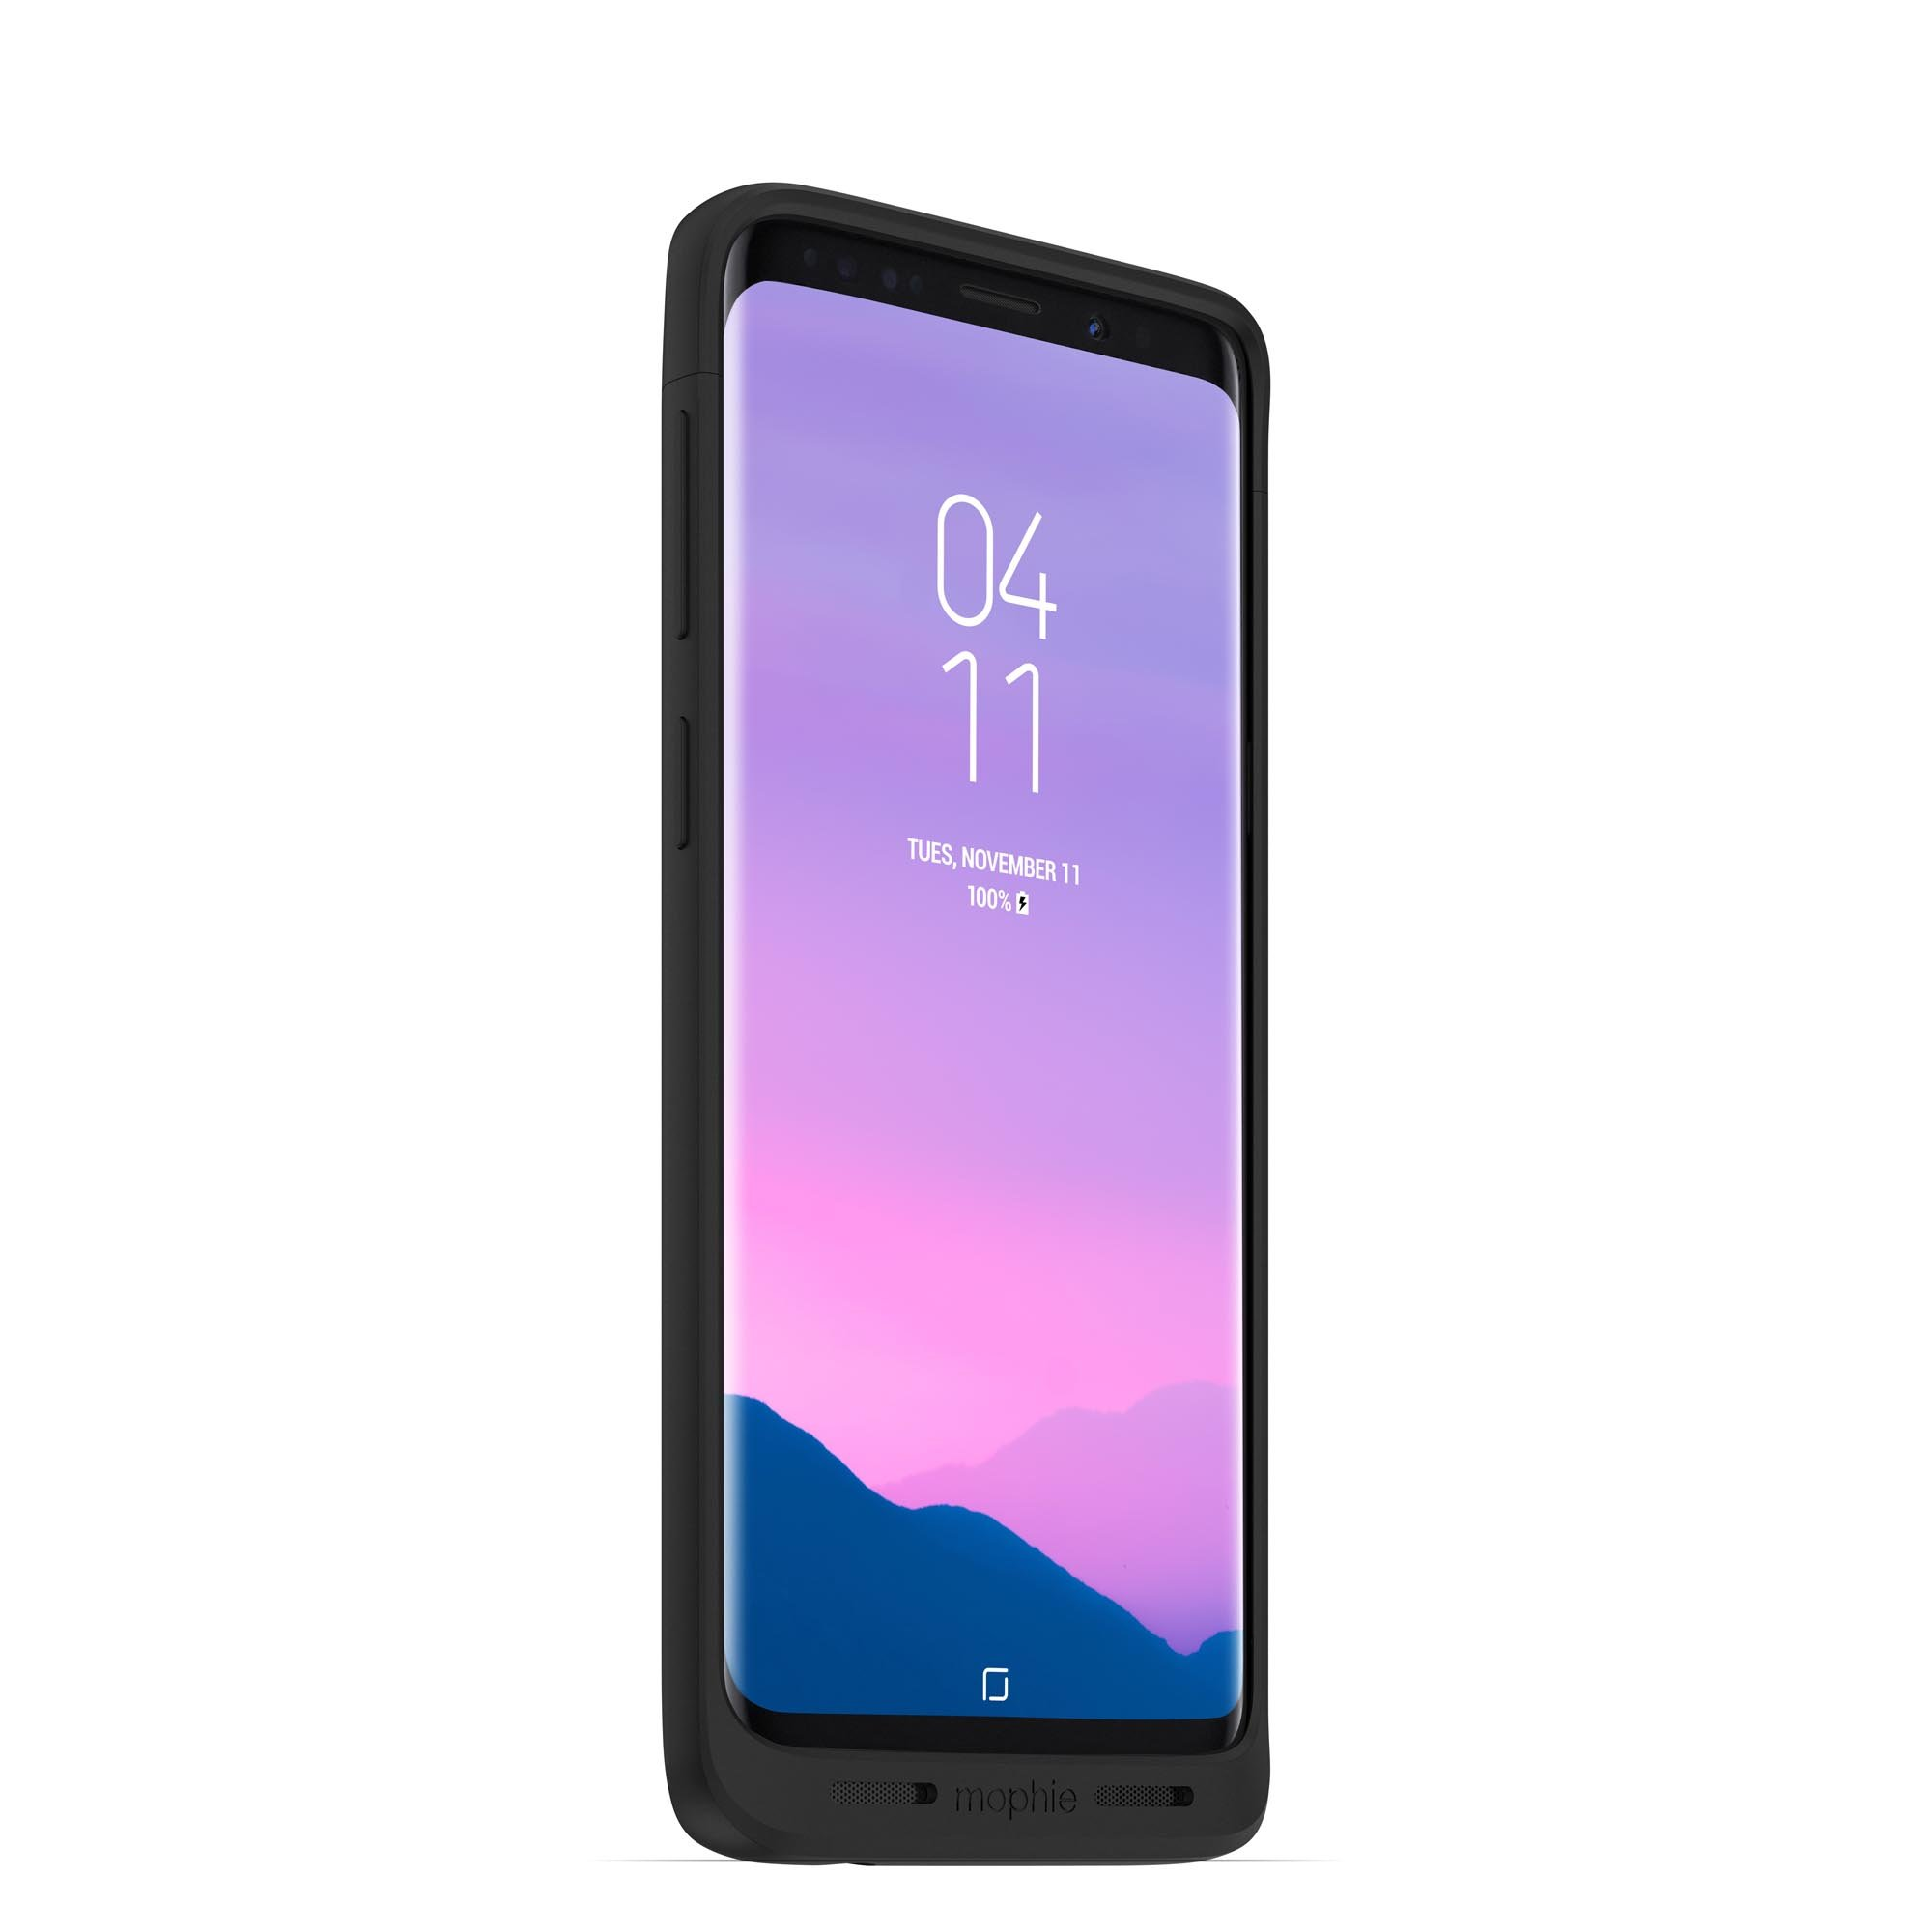 Juice Pack Made for Samsung Galaxy S9 - Wireless Charging Battery Case - Black by mophie (Image #5)